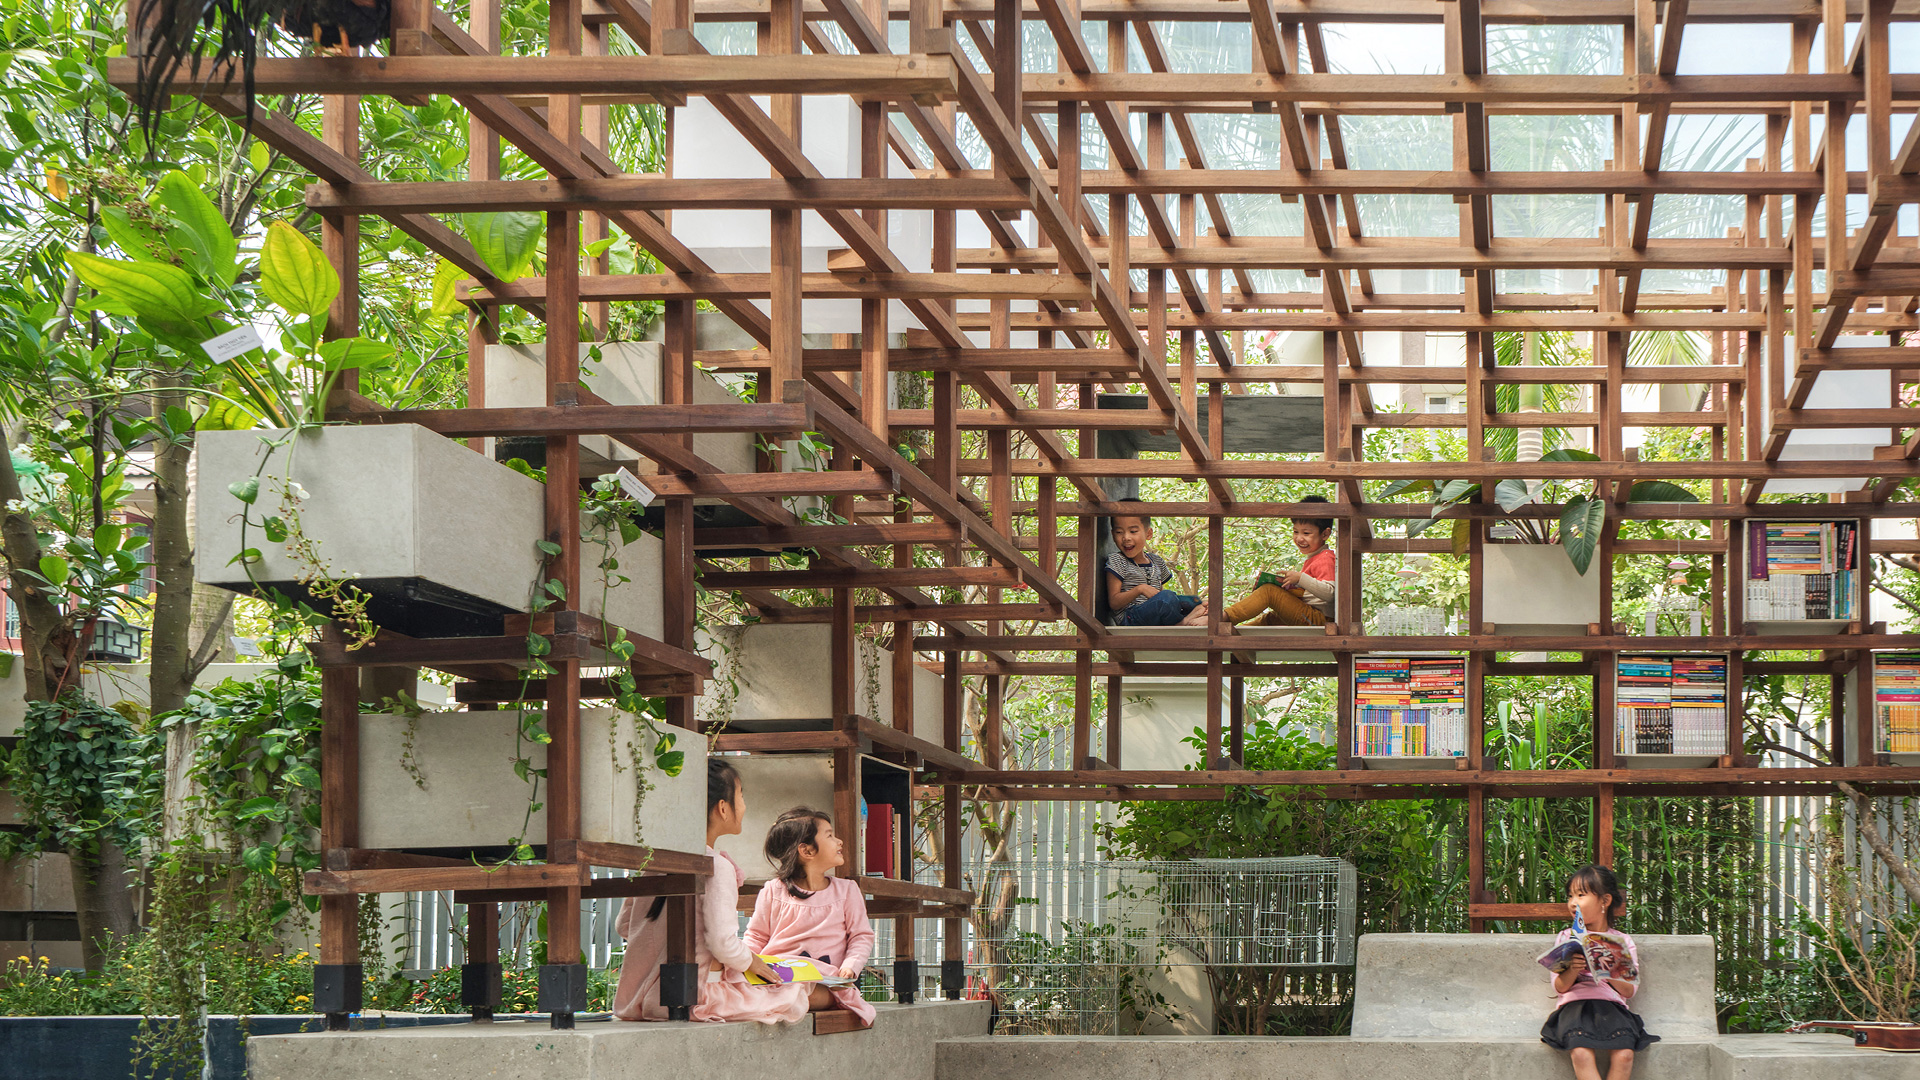 The Vac Library In Hanoi Brings Together Children Plants And Animals